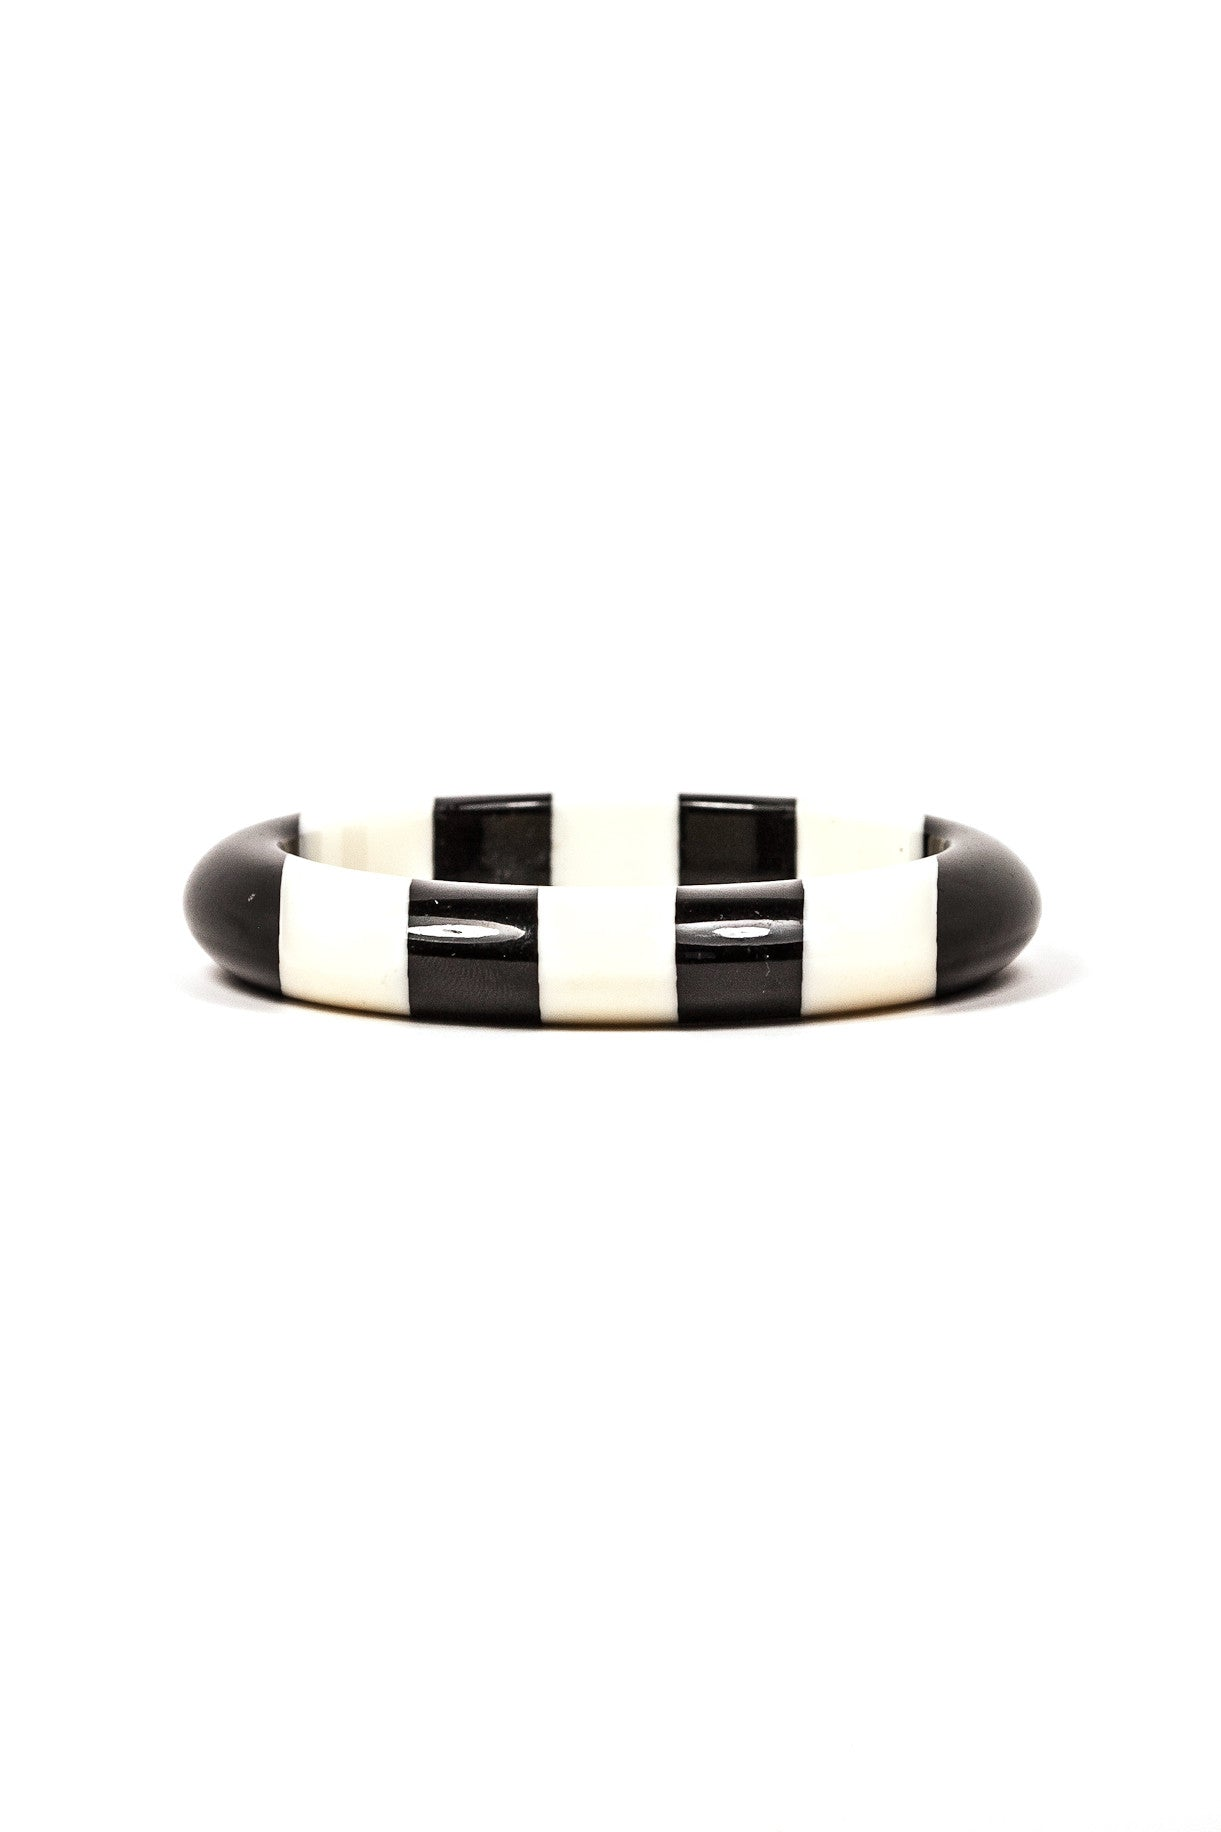 60's__Vintage__Black and White Bangle